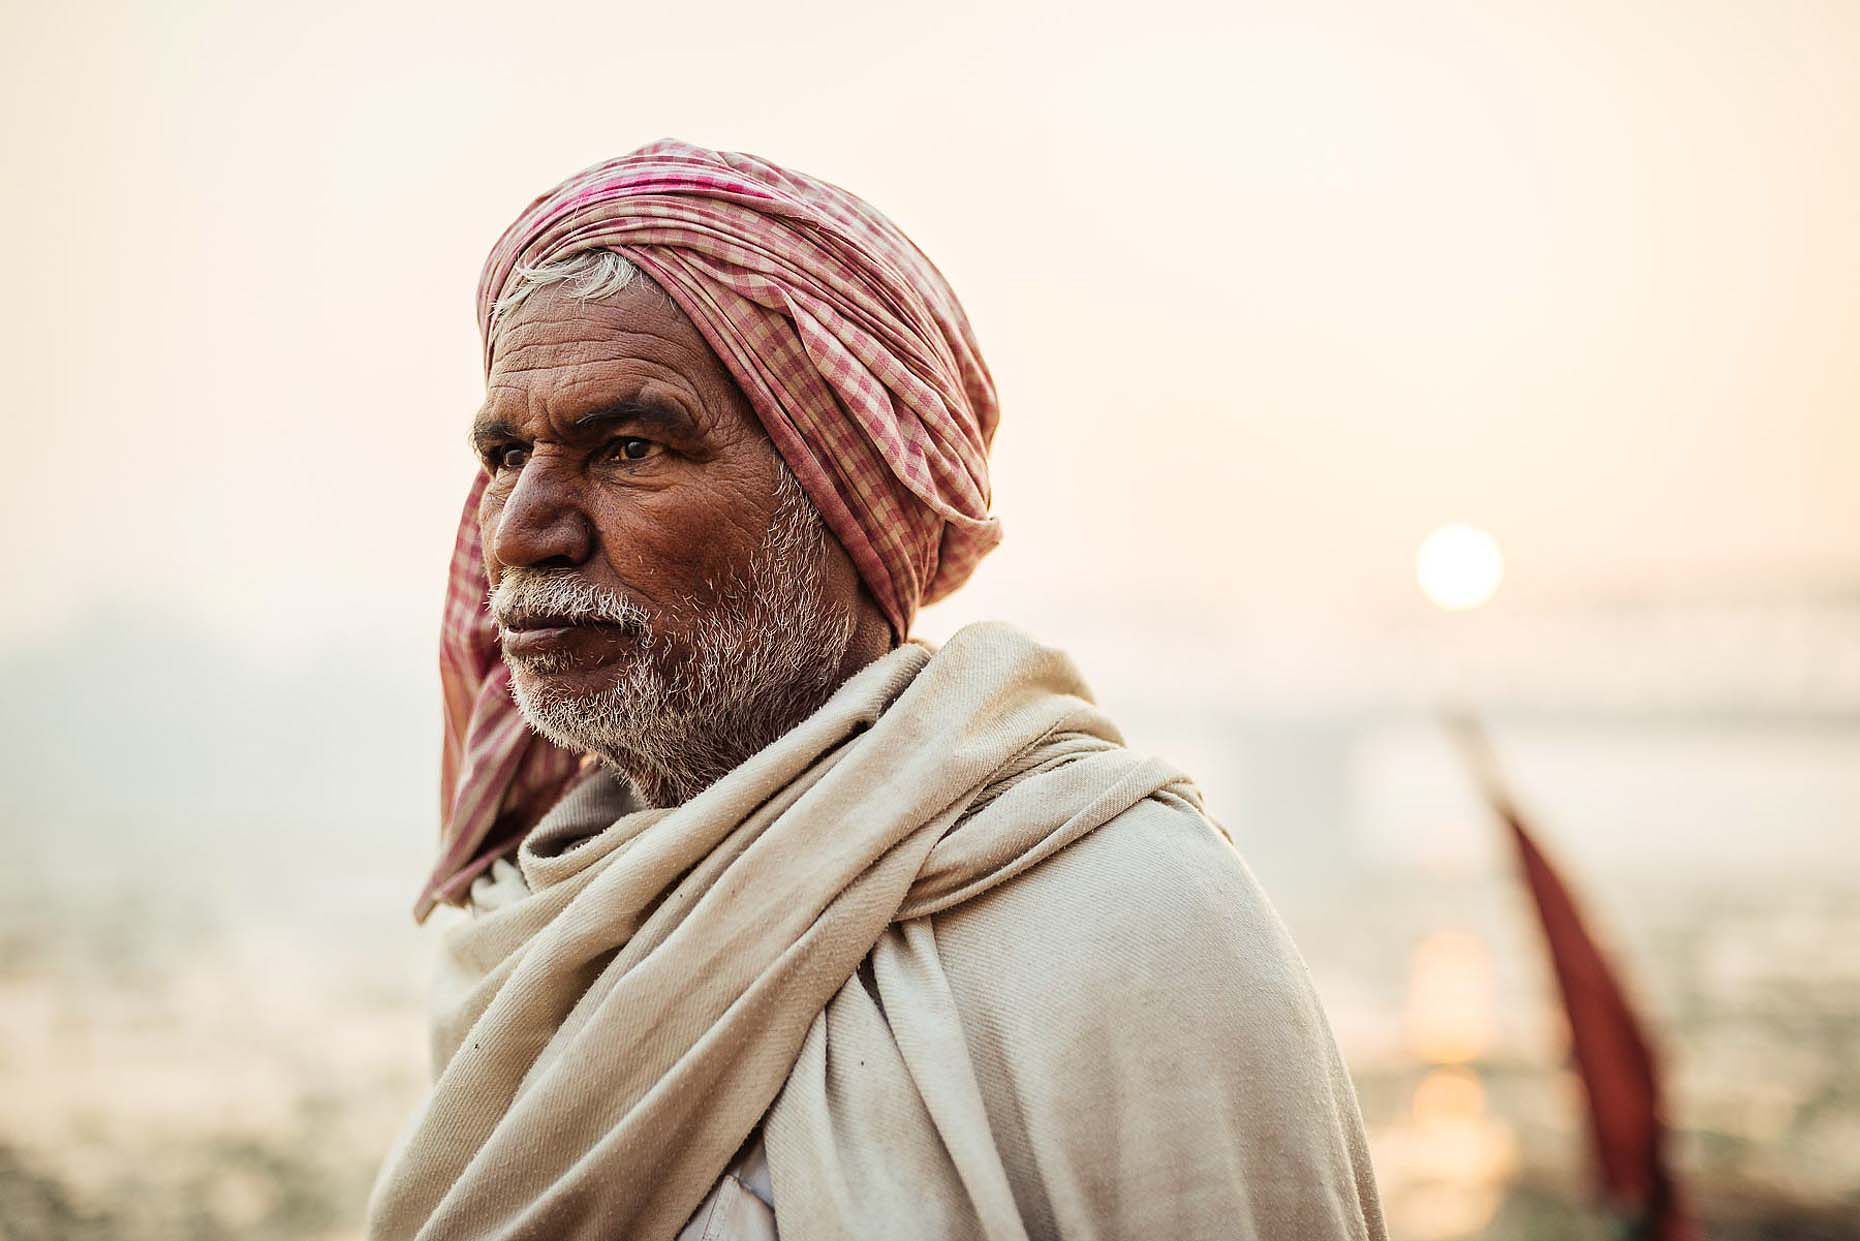 portrait-travel-man-mathura-uttar-pradesh-india-07